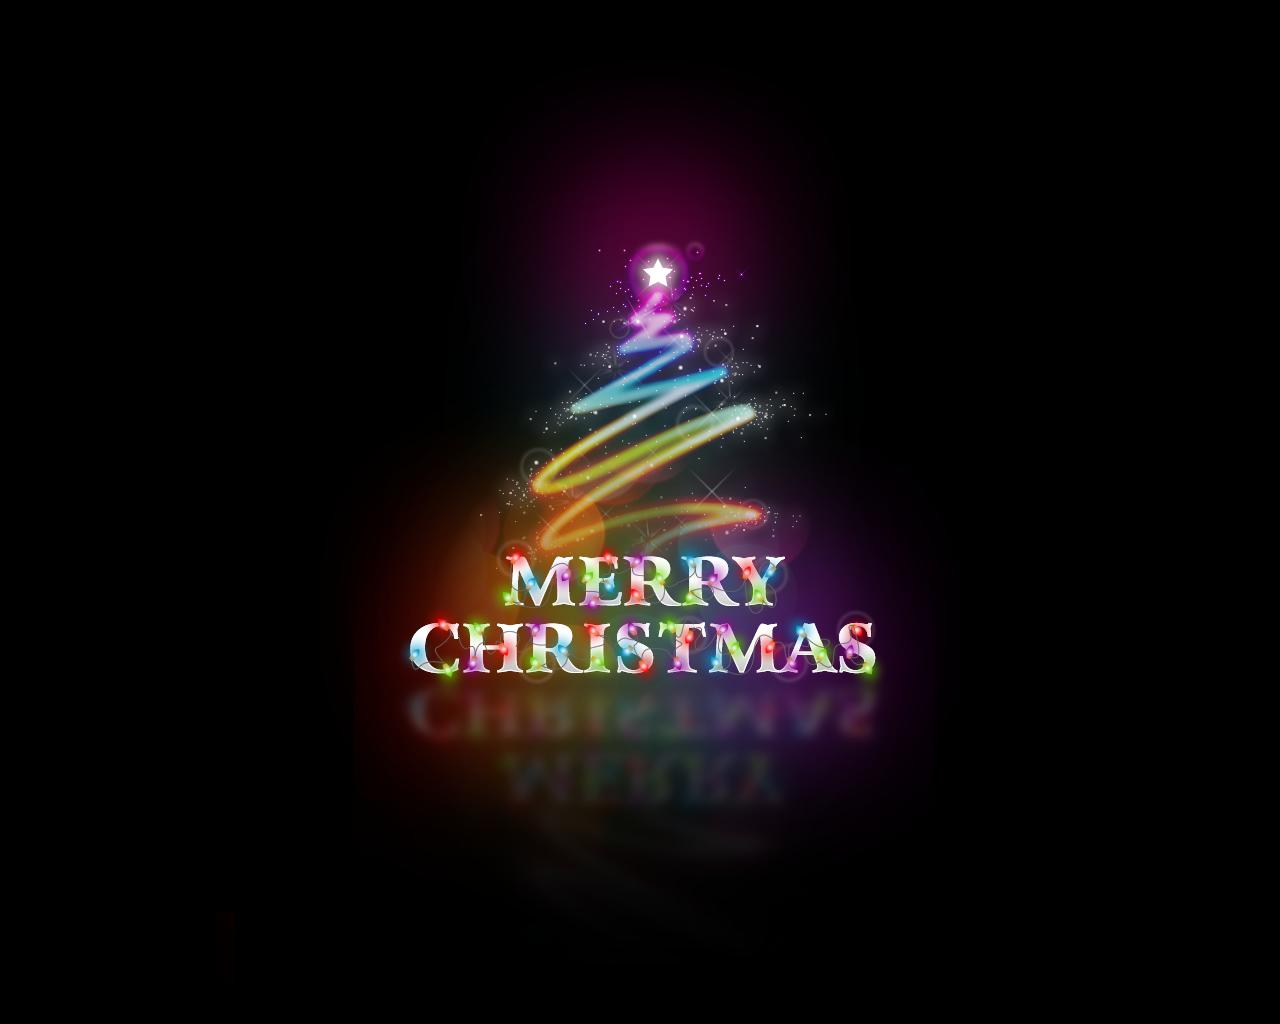 3D Merry Christmas wallpaper Wallpapers   HD 1280x1024